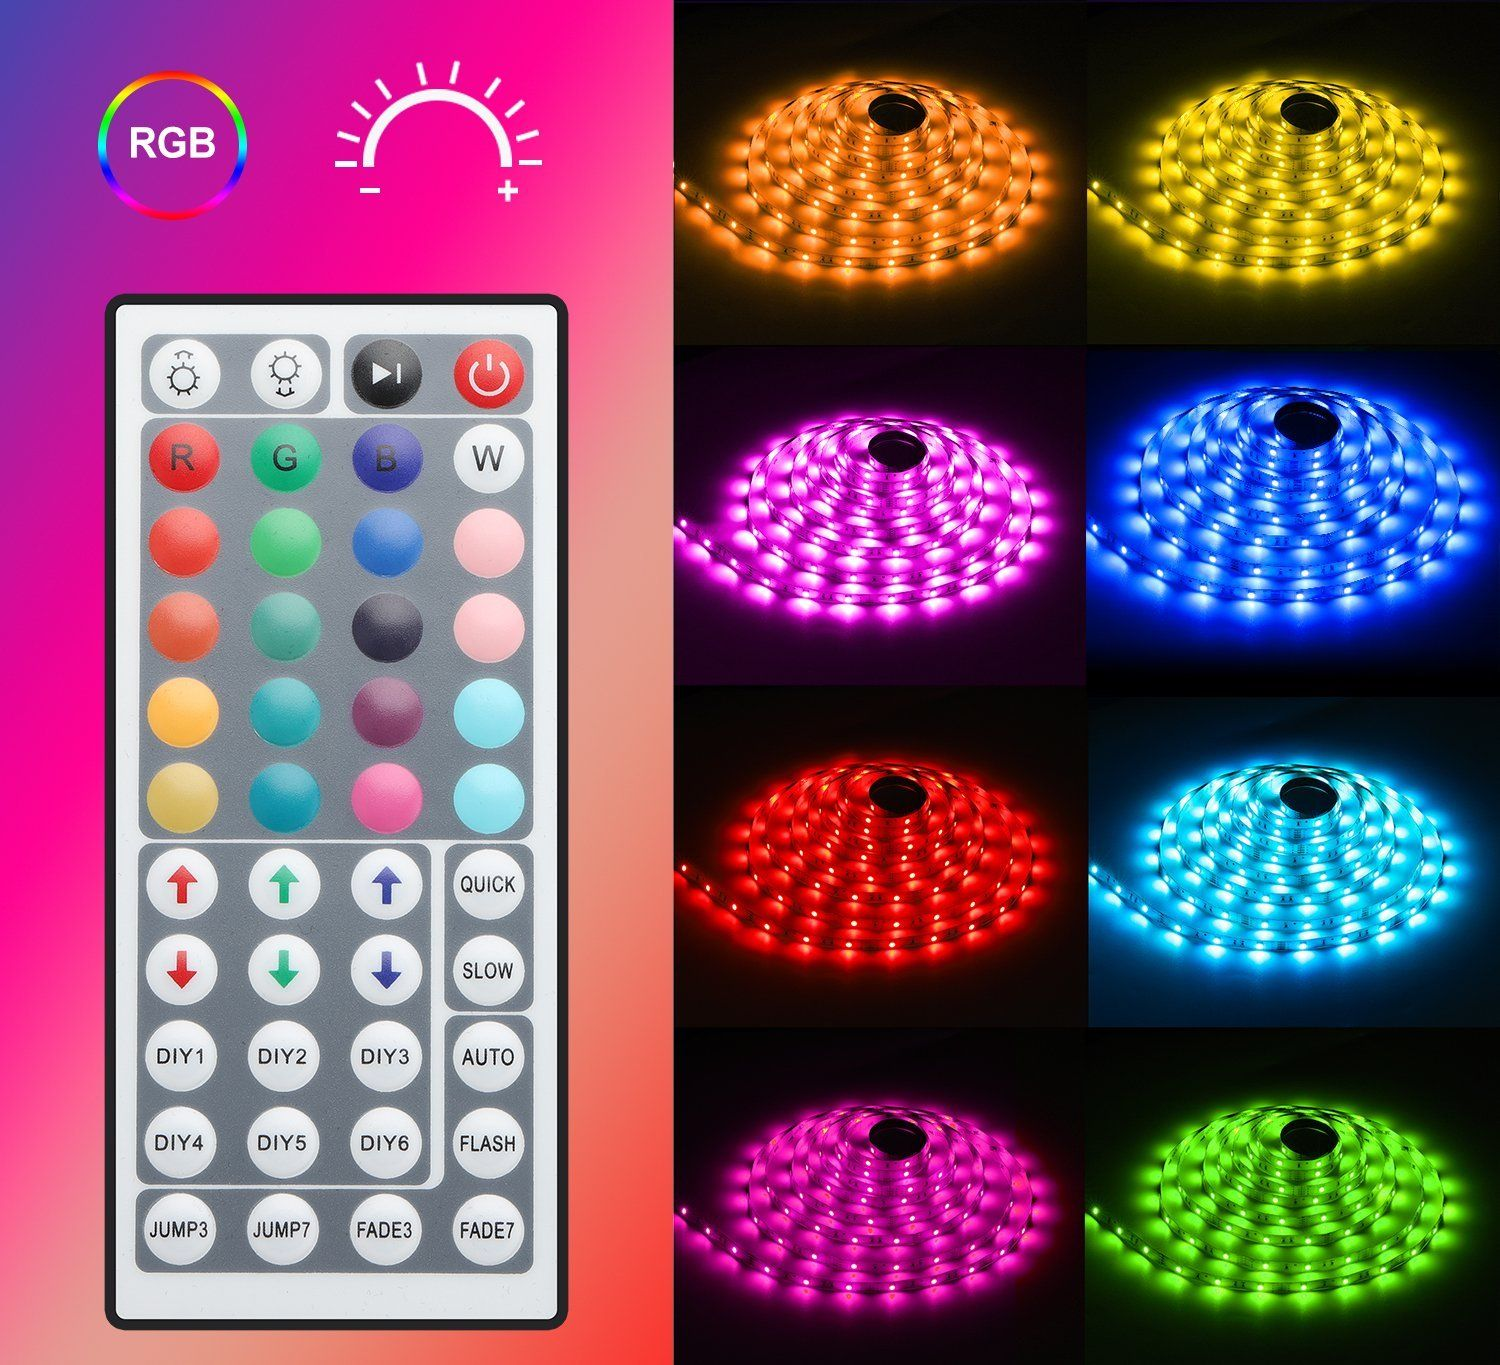 Led Color Changing And Dimple Lights To Use In The Color Changing Top Of The Tiki Bar Led Strip Lighting Led Tape Lighting Color Changing Led